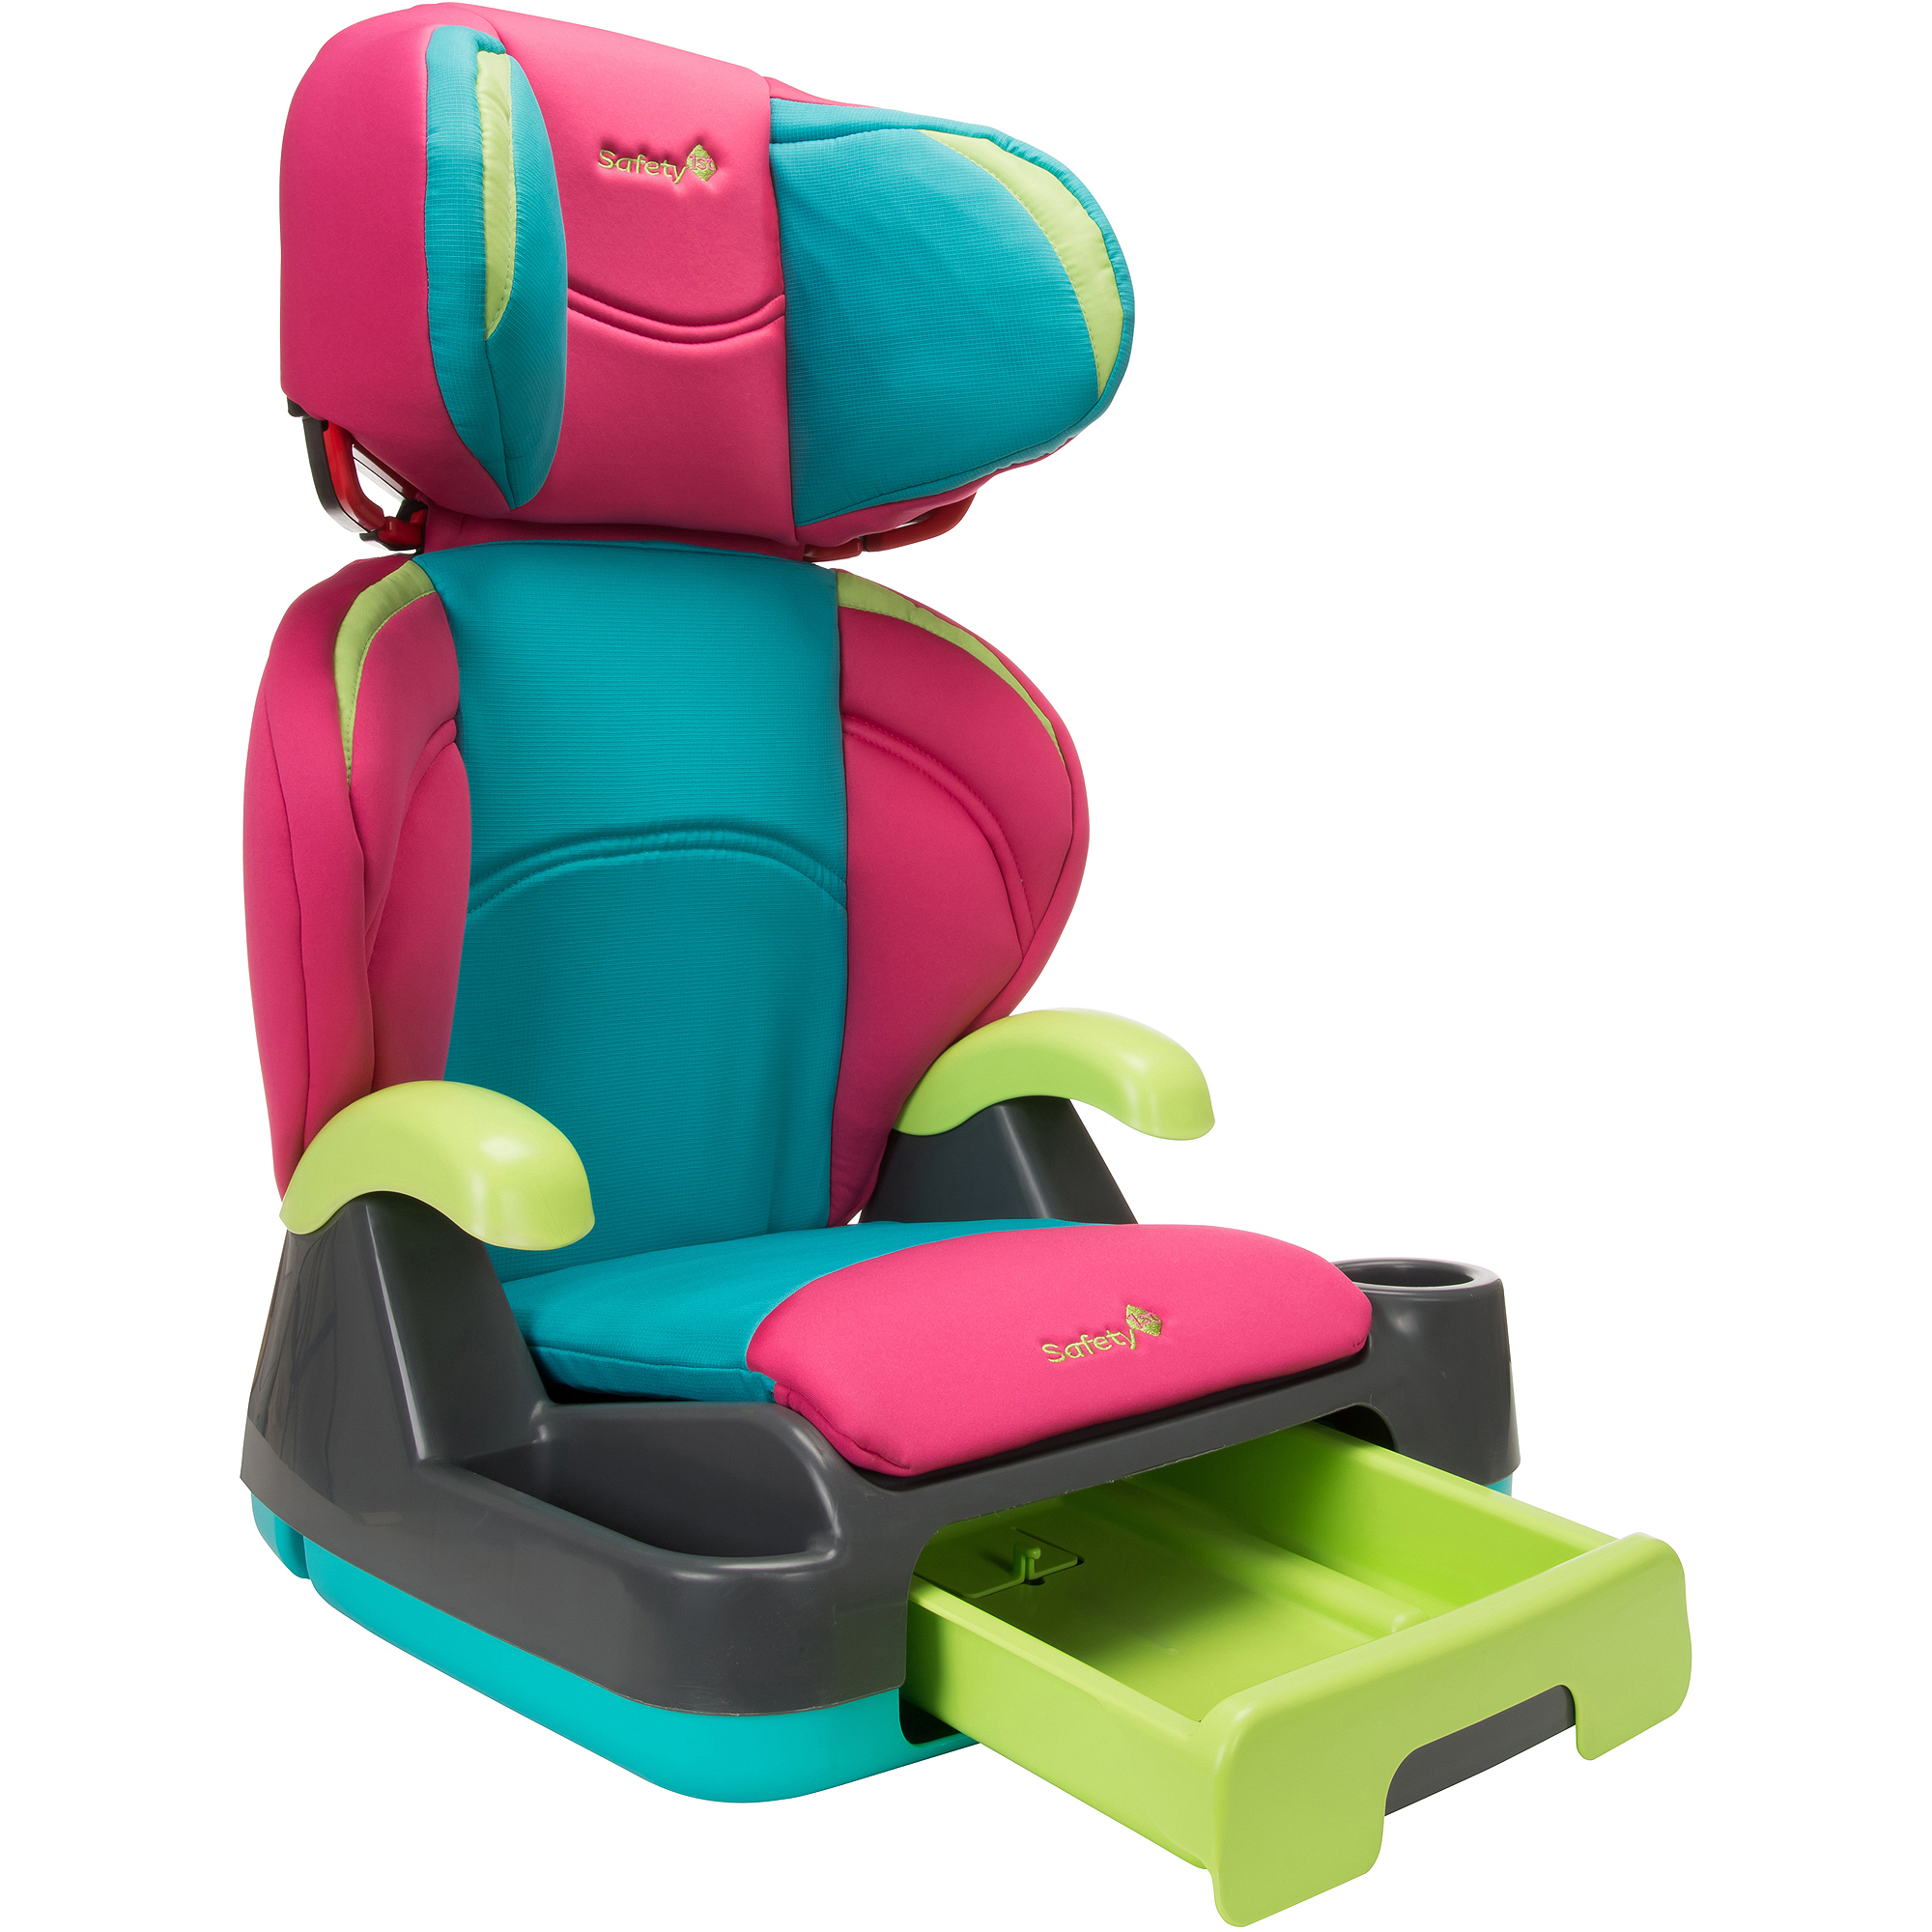 Safety 1st Store 'N Go Booster Car Seat, Belt-Positioning, Fruit Punch